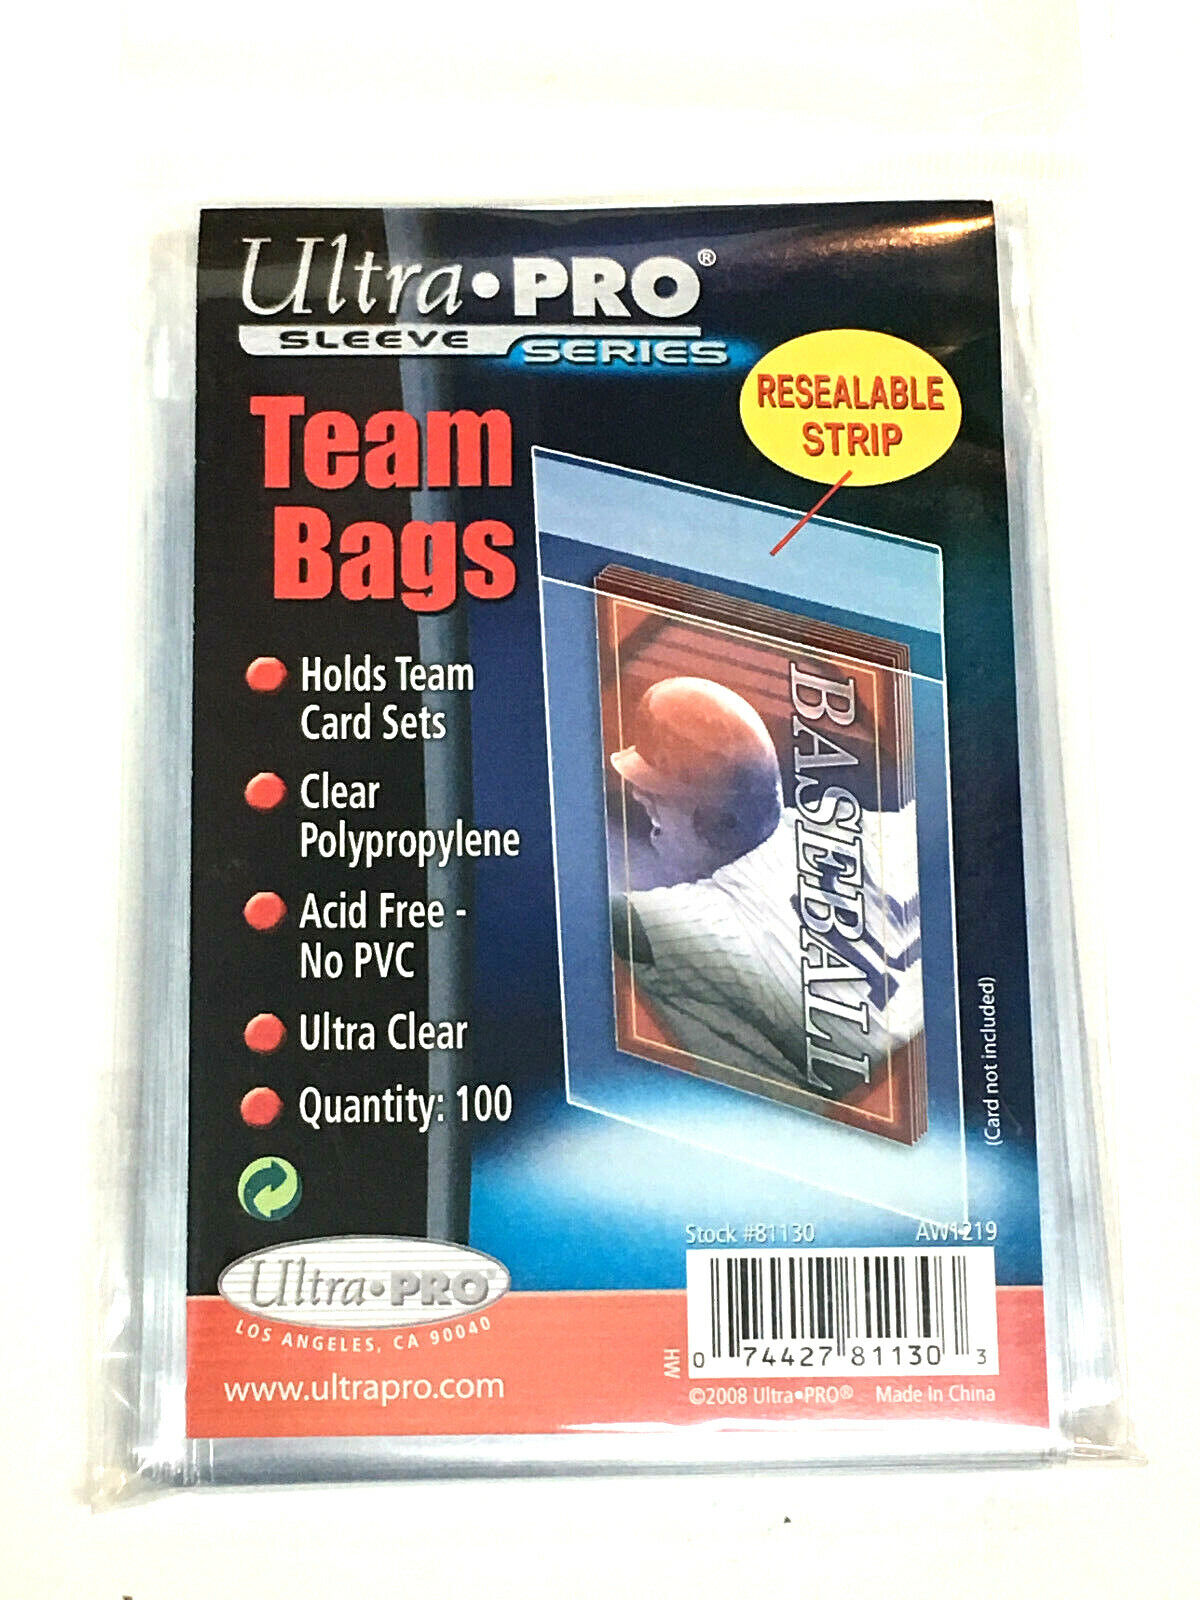 100 Ultra Pro TEAM SET BAGS Resealable Strip Trading Card Baseball UV 1 Pack-NEW